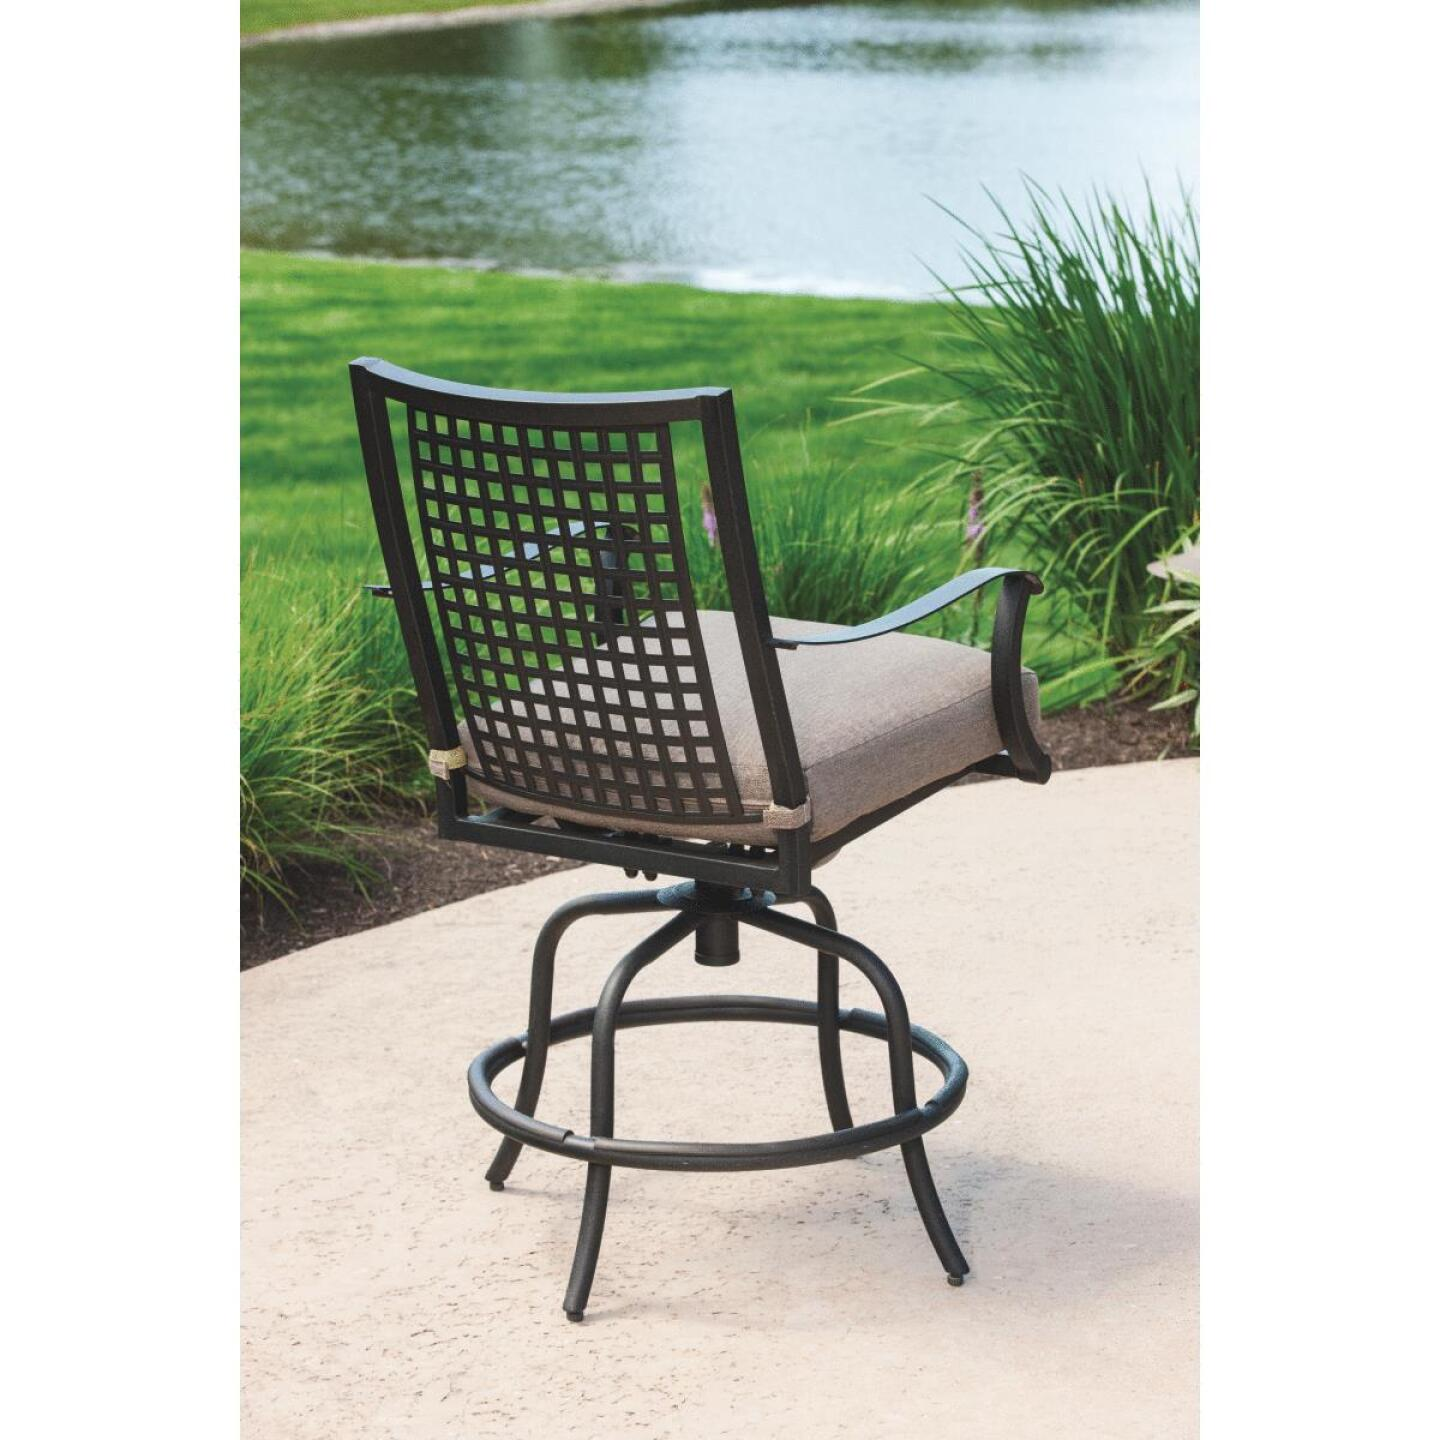 Palazzo 3-Piece Bistro Set with Seat Cushions Image 14